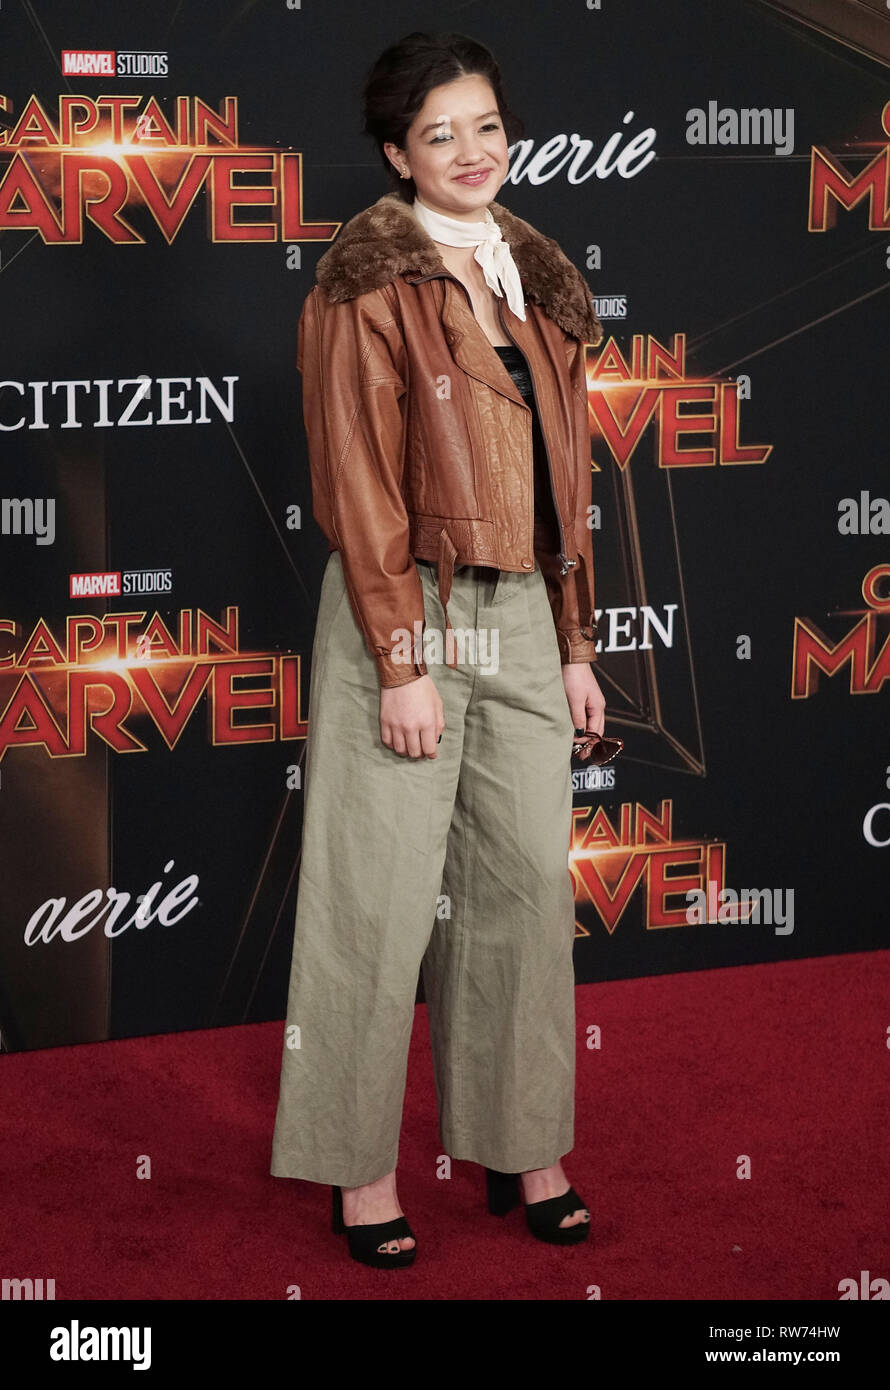 Los Angeles, USA. 04th Mar, 2019. Peyton Elizabeth Lee 122 attends the Marvel Studios 'Captain Marvel' premiere on March 04, 2019 in Hollywood, California. Credit: Tsuni/USA/Alamy Live News - Stock Image